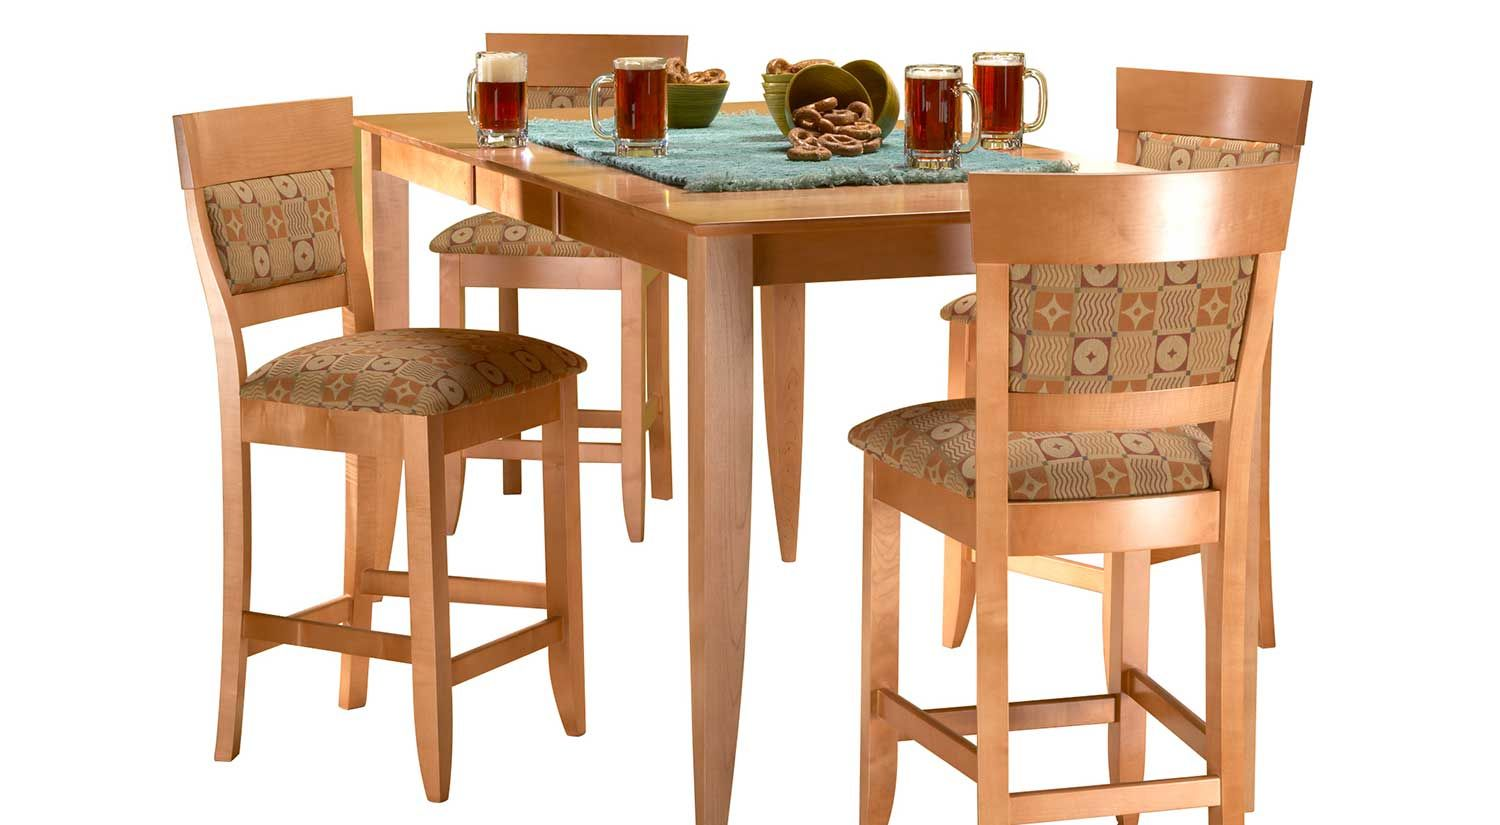 Saber Counter Table Maple Dining Tables Ma Circle Furniture Table Bar Table Counter Table